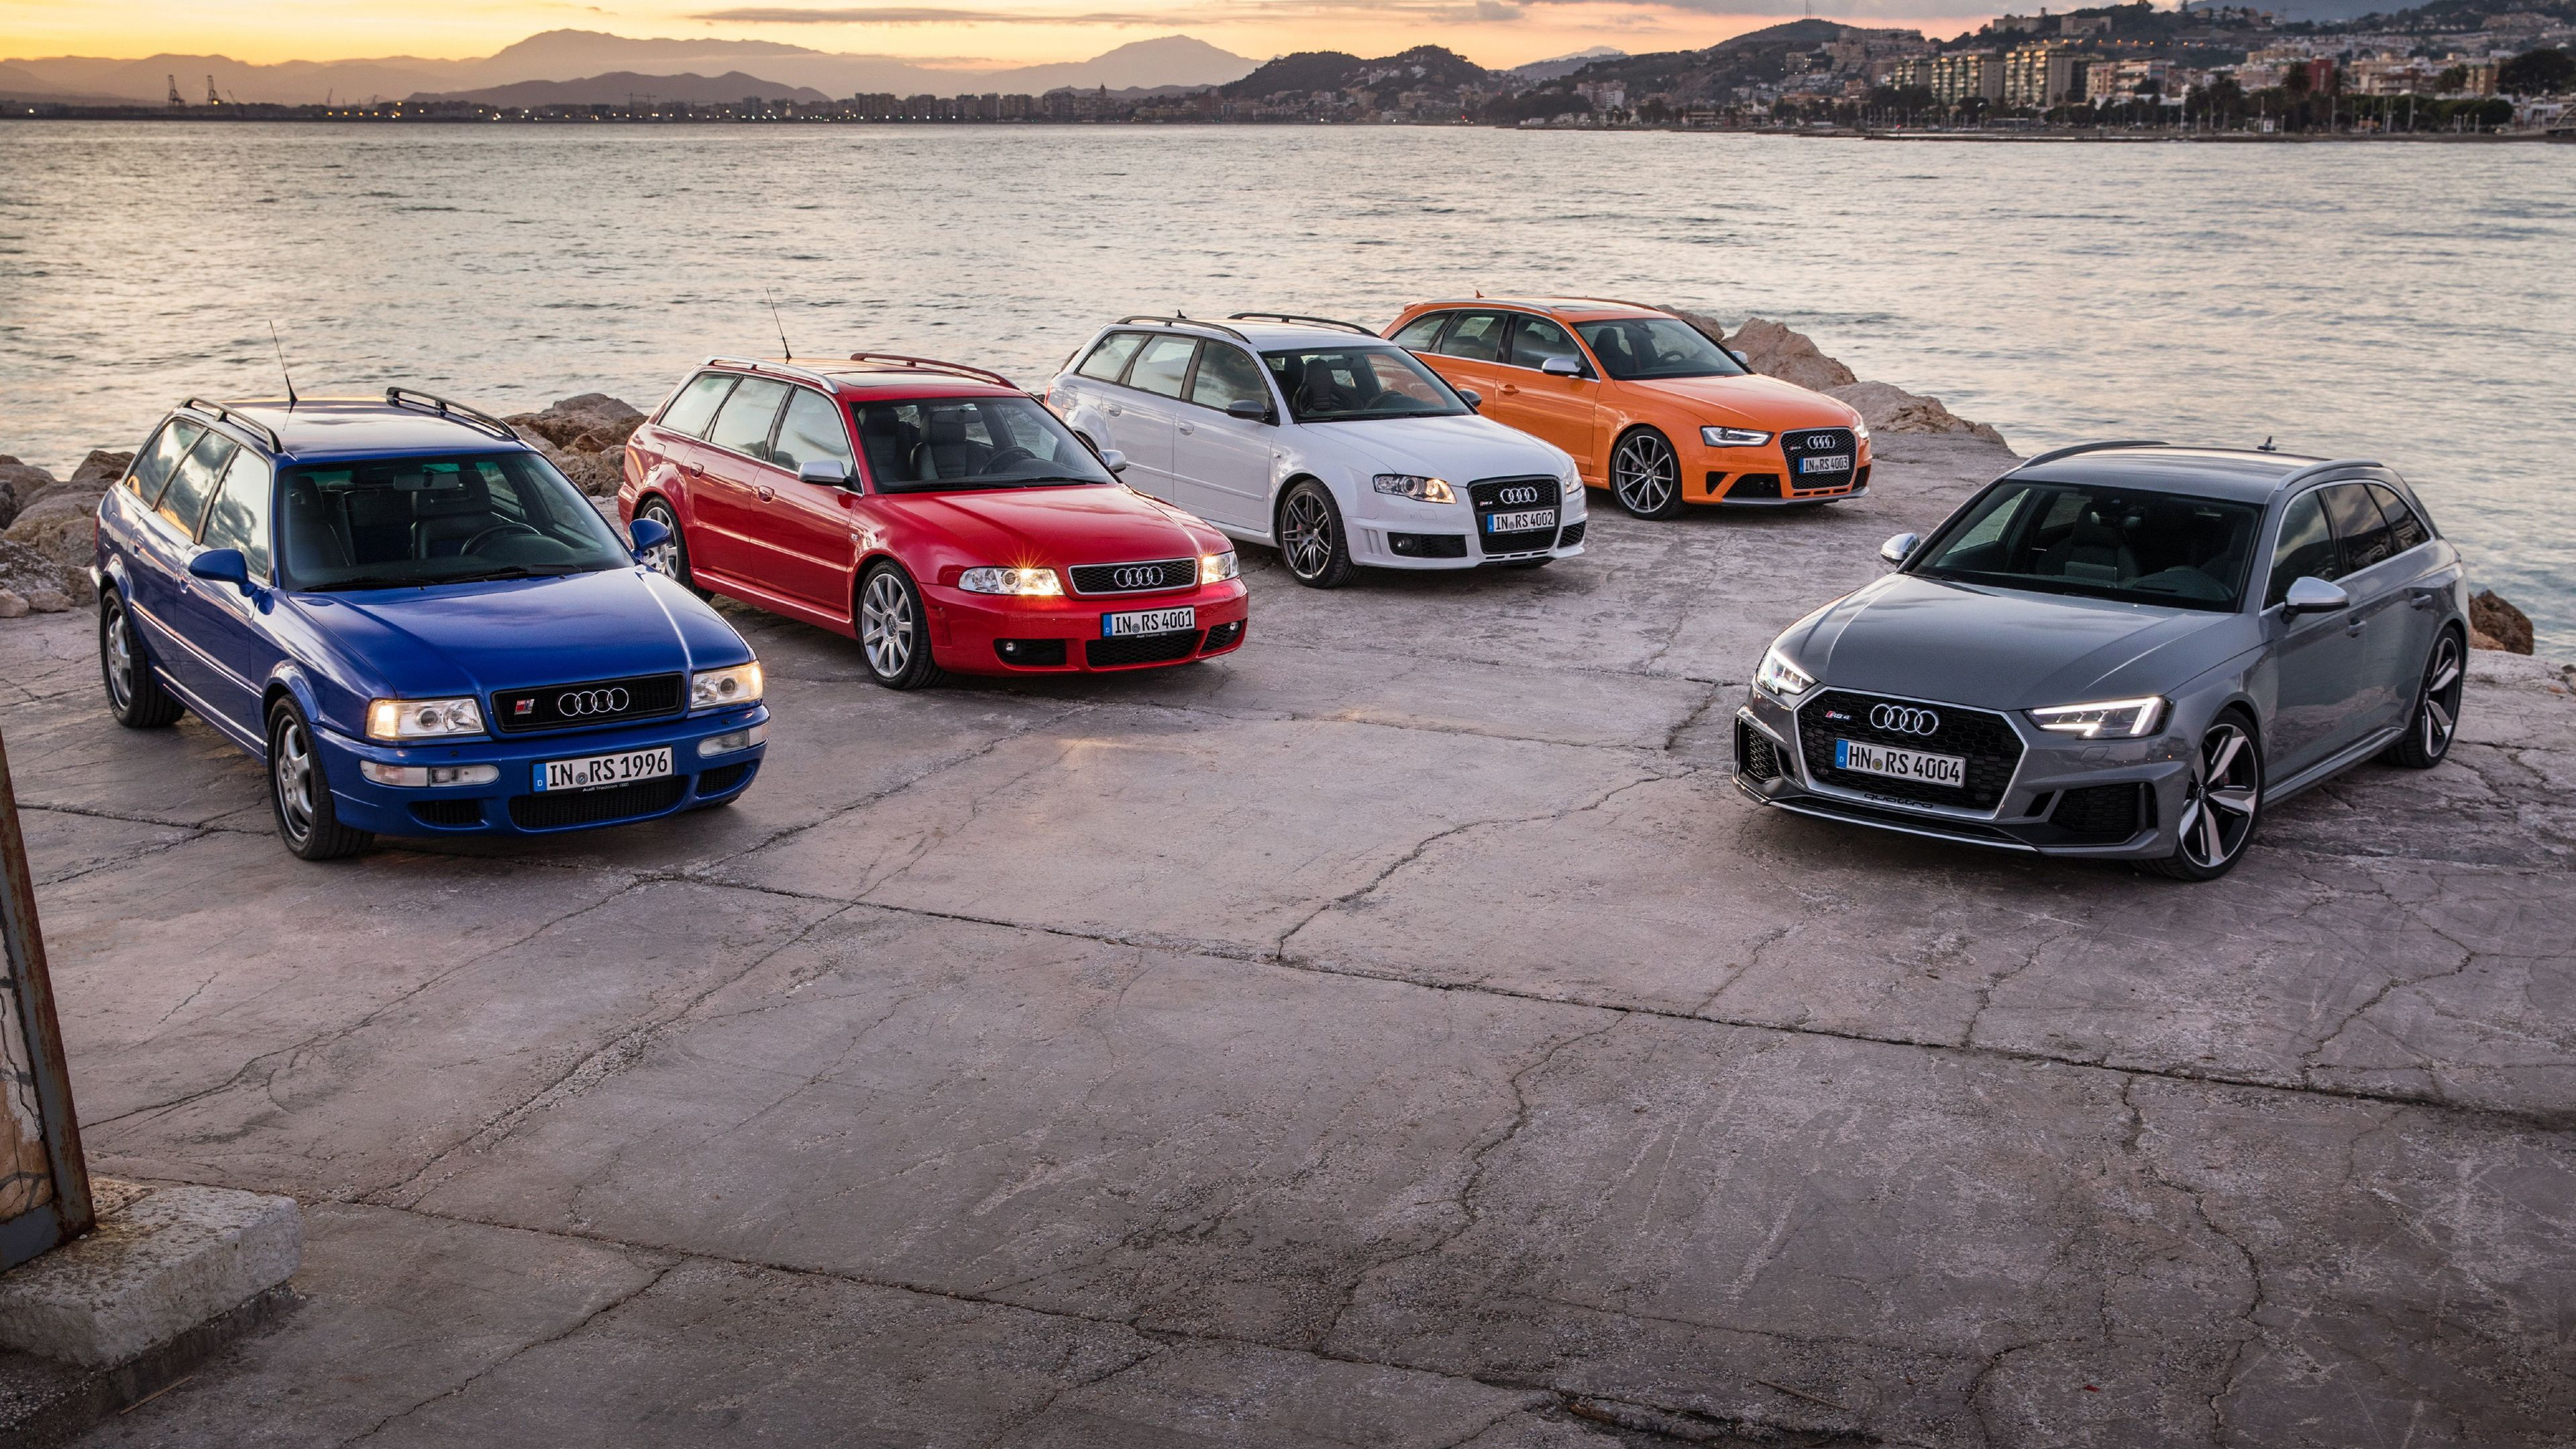 Wallpaper 4k Audi Rs2 Rs4 All Editions 2017 Cars Wallpapers 4k